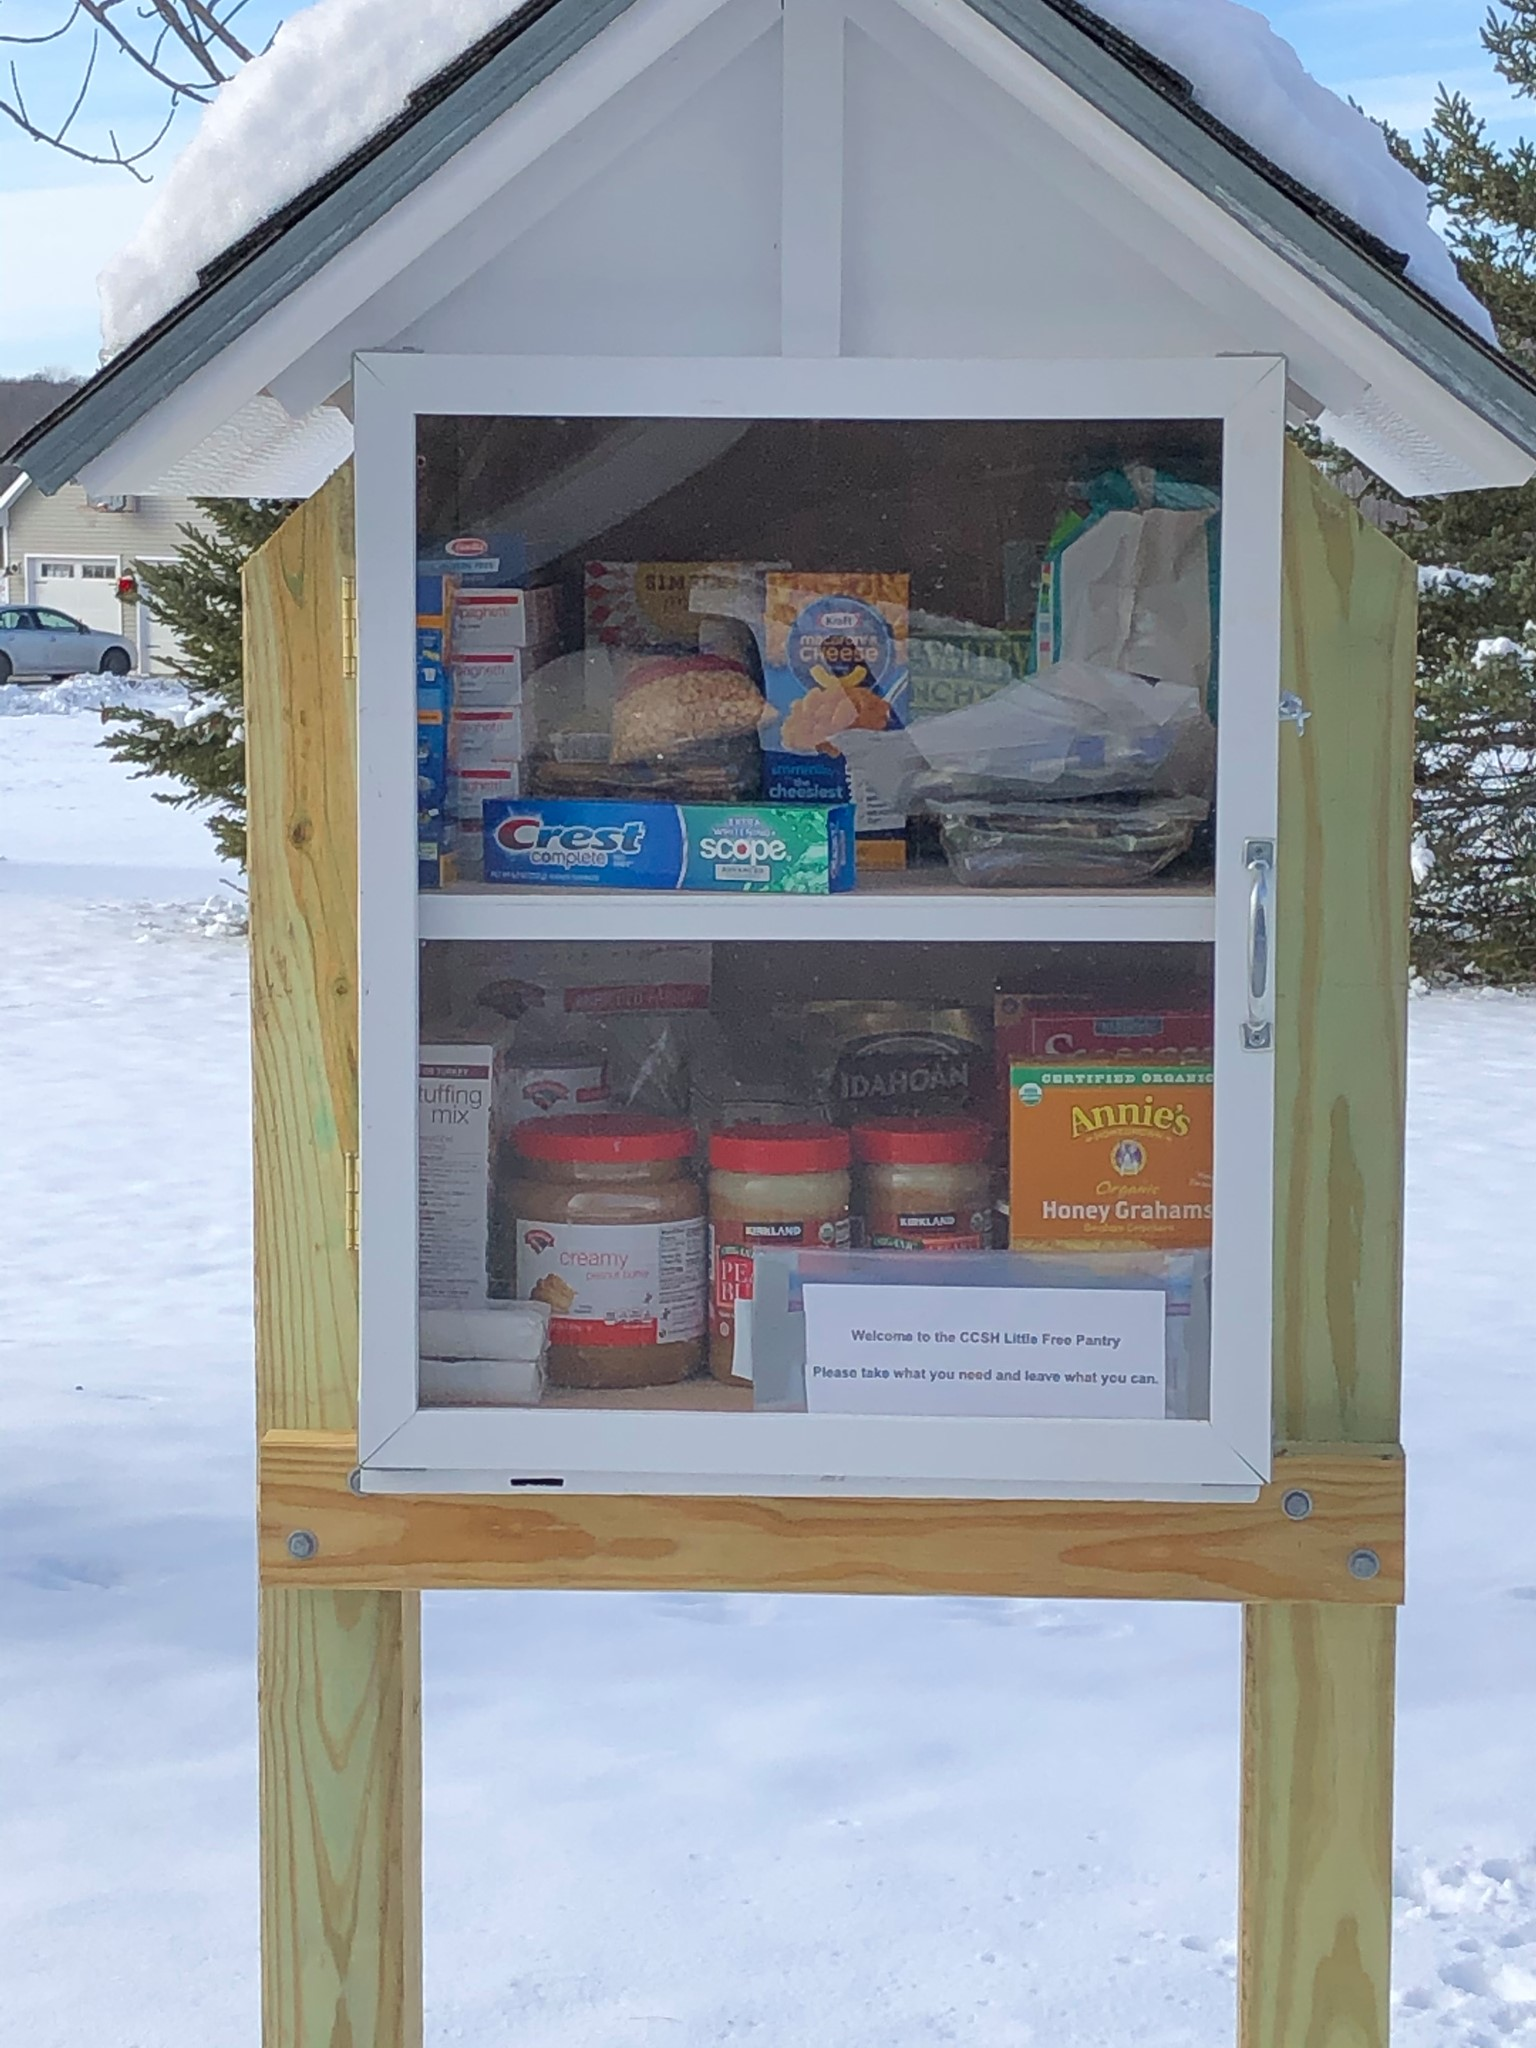 Little free pantry in Vermont